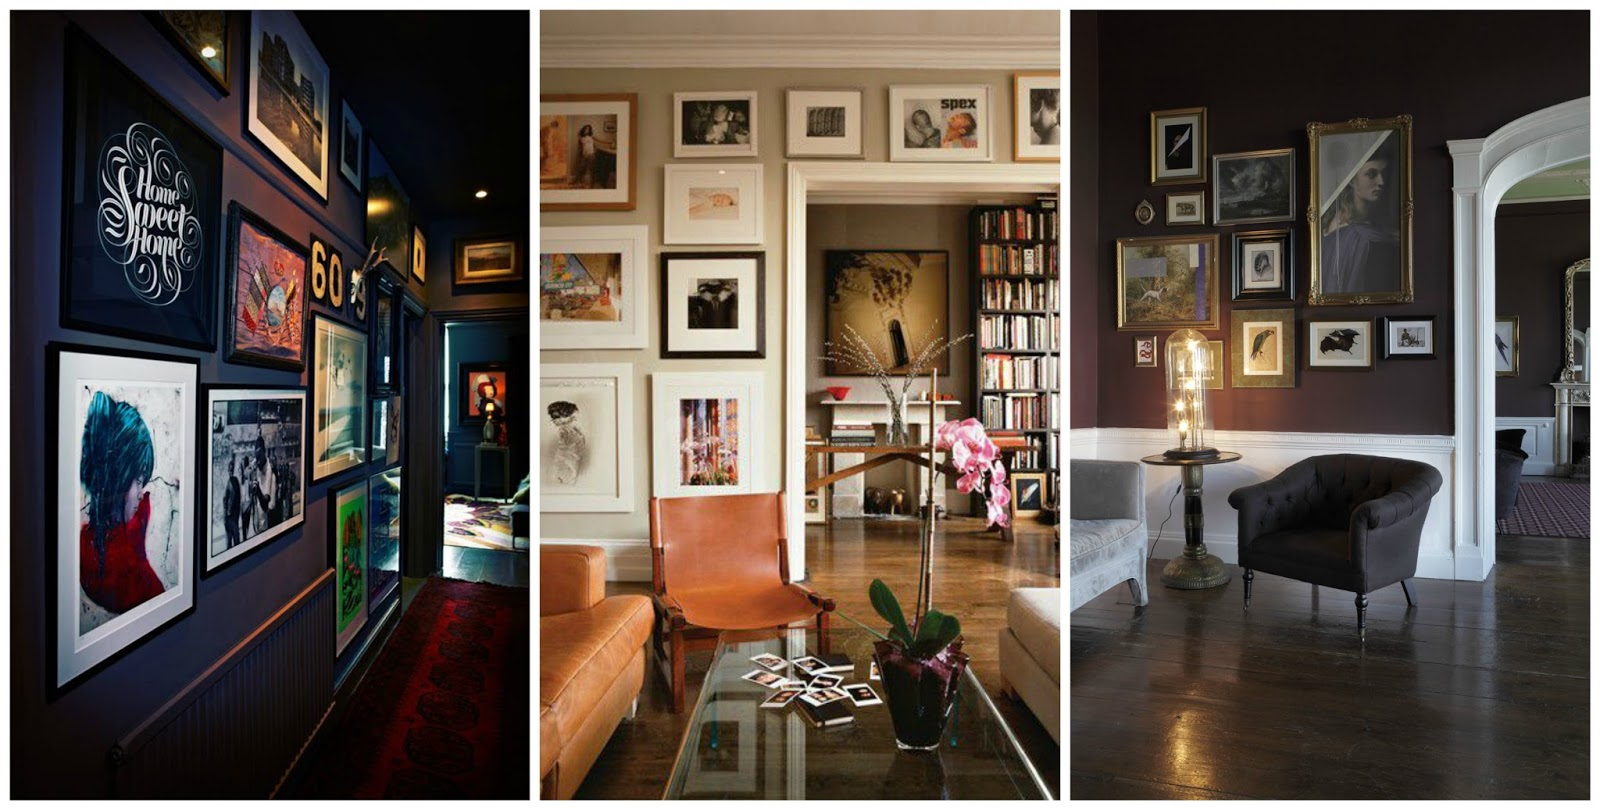 gallery work home. (Left) I Love This Gallery Wall By Abigail Ahern - Intense Colours \u0026 Captivating Images Stand Out Against The Dark Walls. (middle) Is A Nice Example Of Work Home